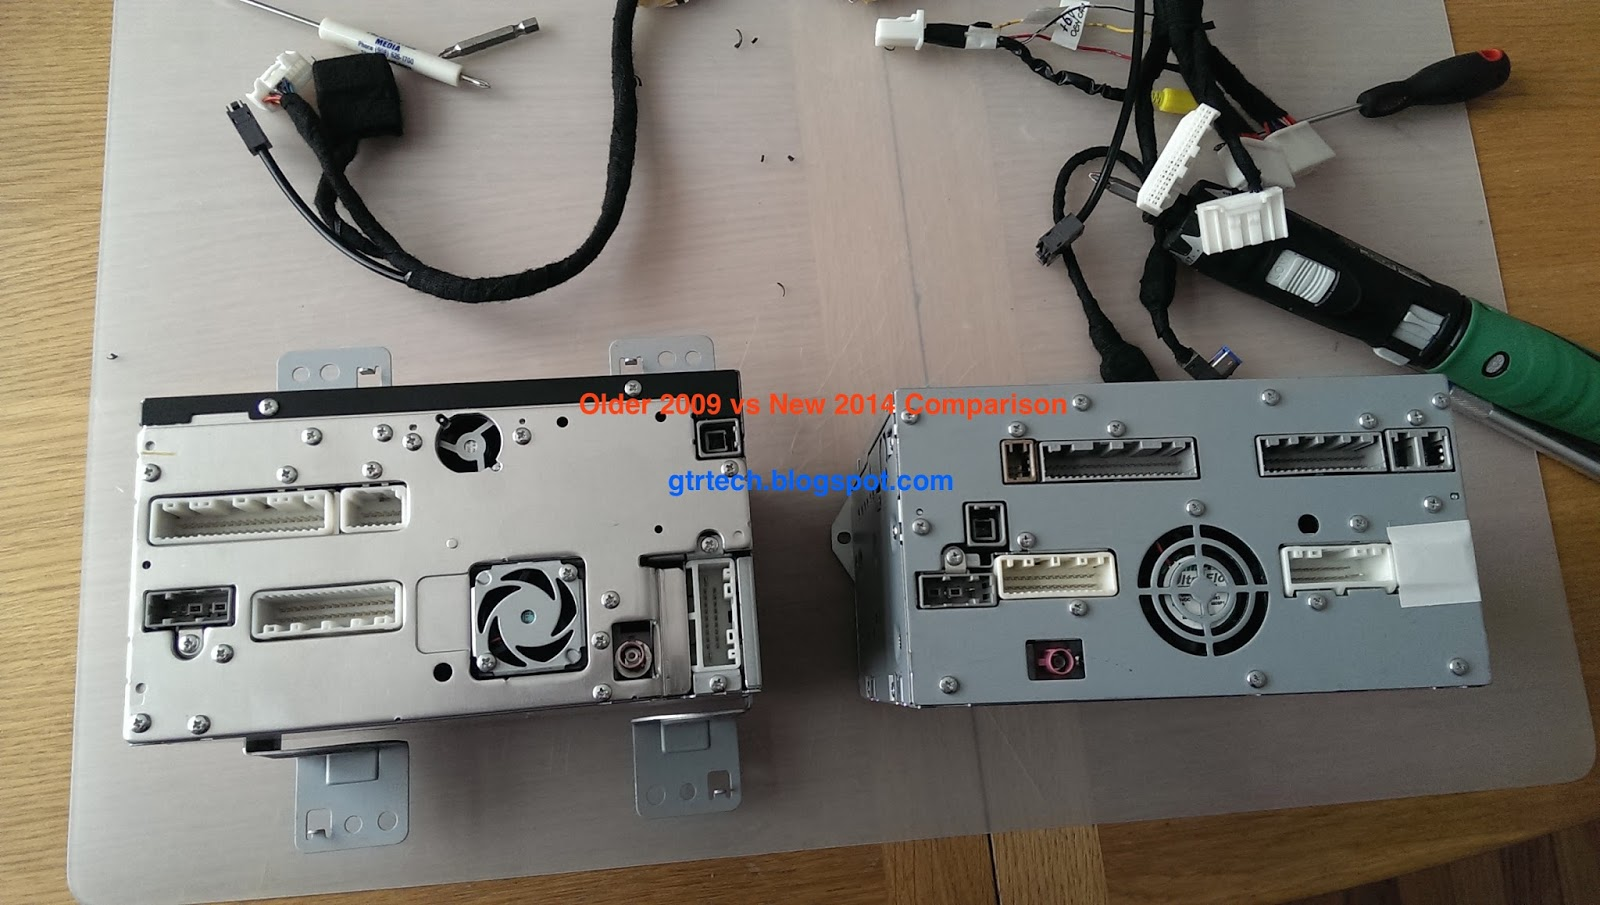 Nissan Gt R R35 Technical Diy Blog Upgrading 2009 Av Gtr Wiring Diagram Now Time For The Nav Unit Here Is A Quick Comparison